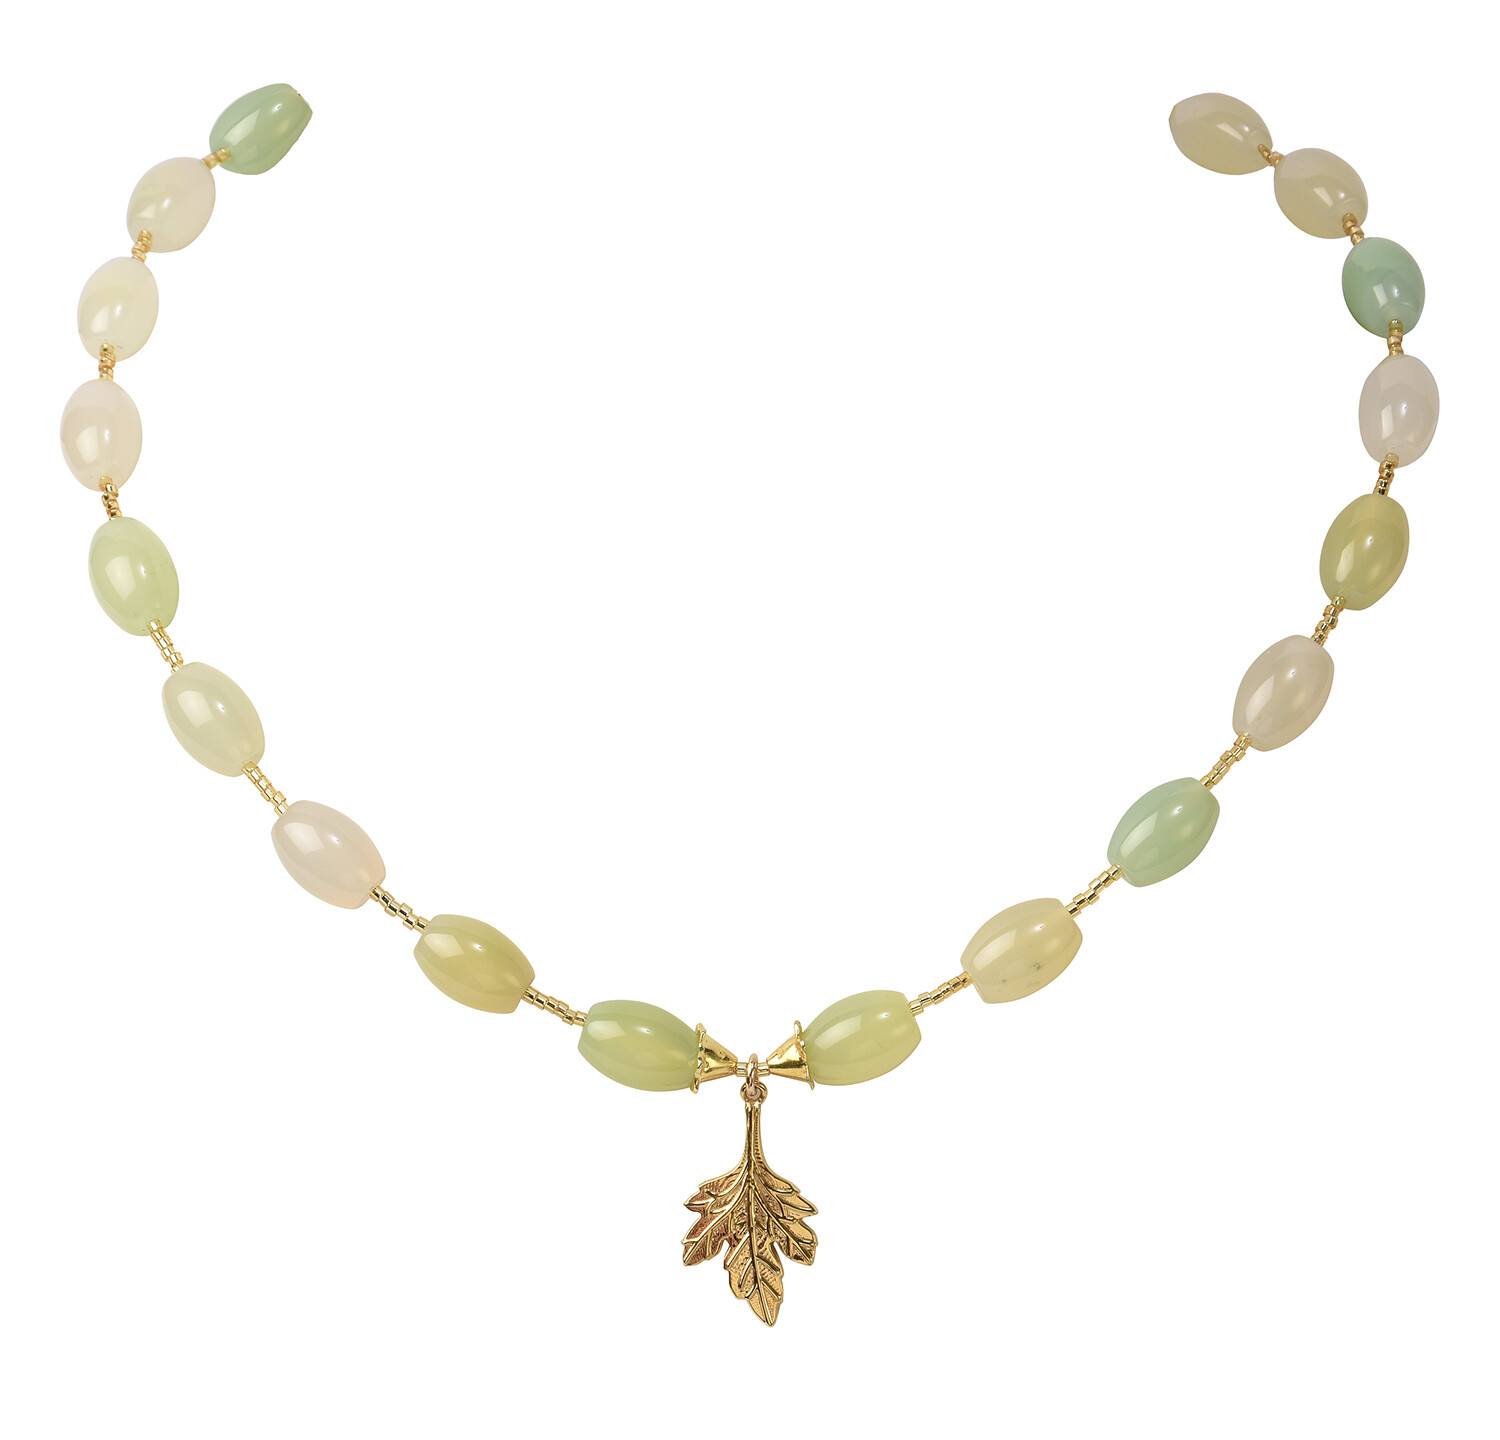 POM Oval Green/Yellow Agate Necklace